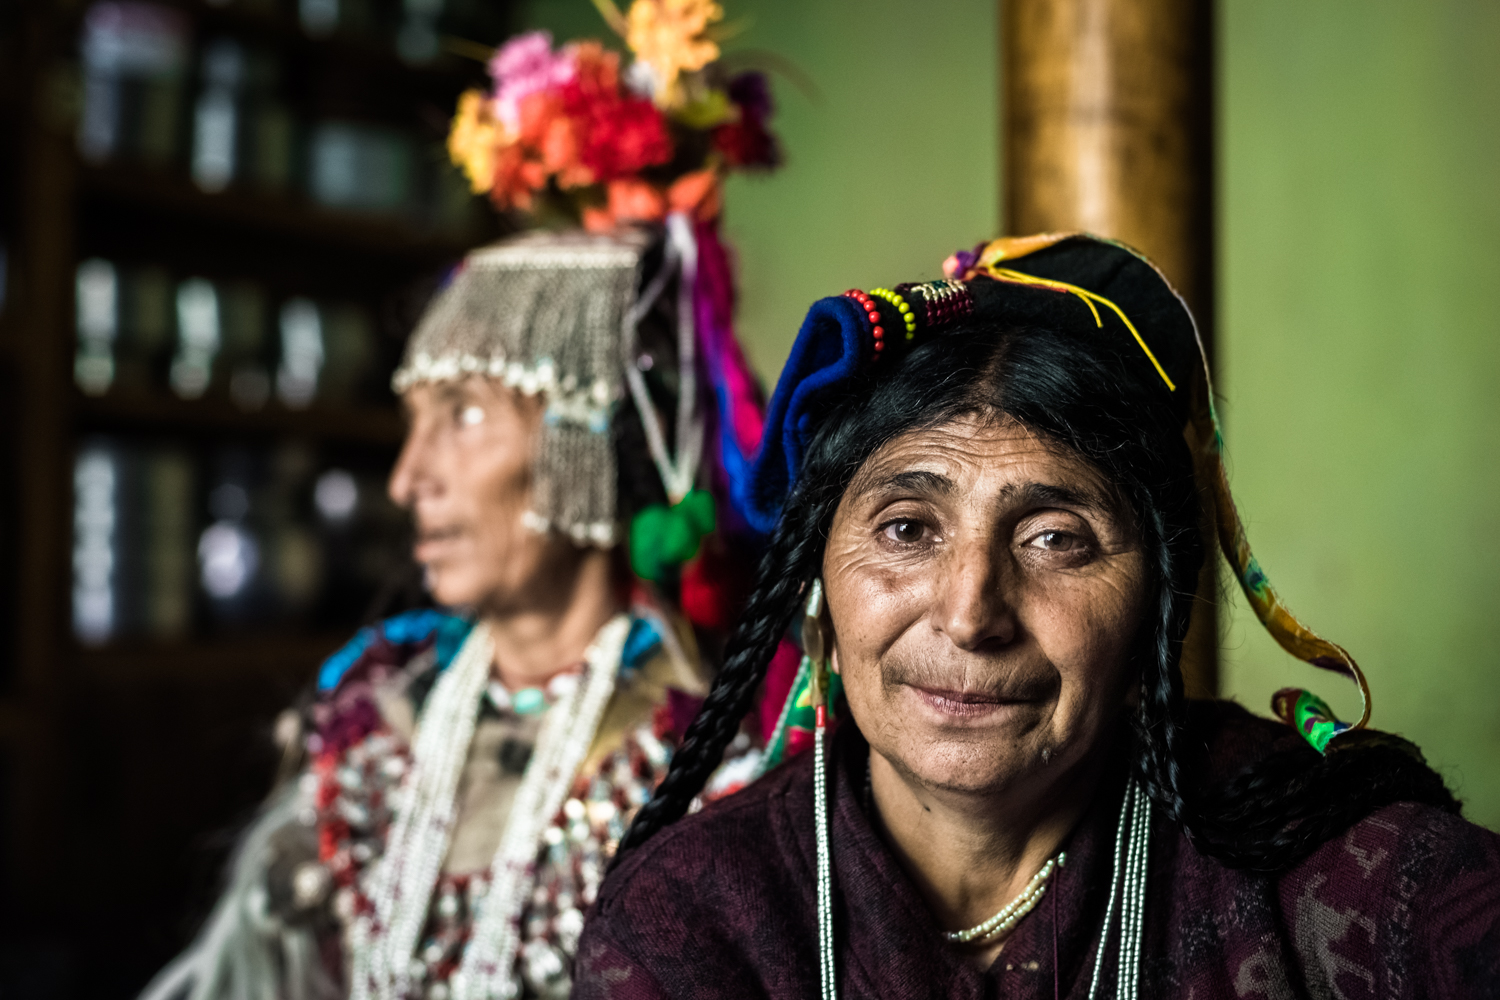 © Ayash Basu. A tad surprisingly, but pleasantly and re-assuringly, women are front and center of Brokpa culture.